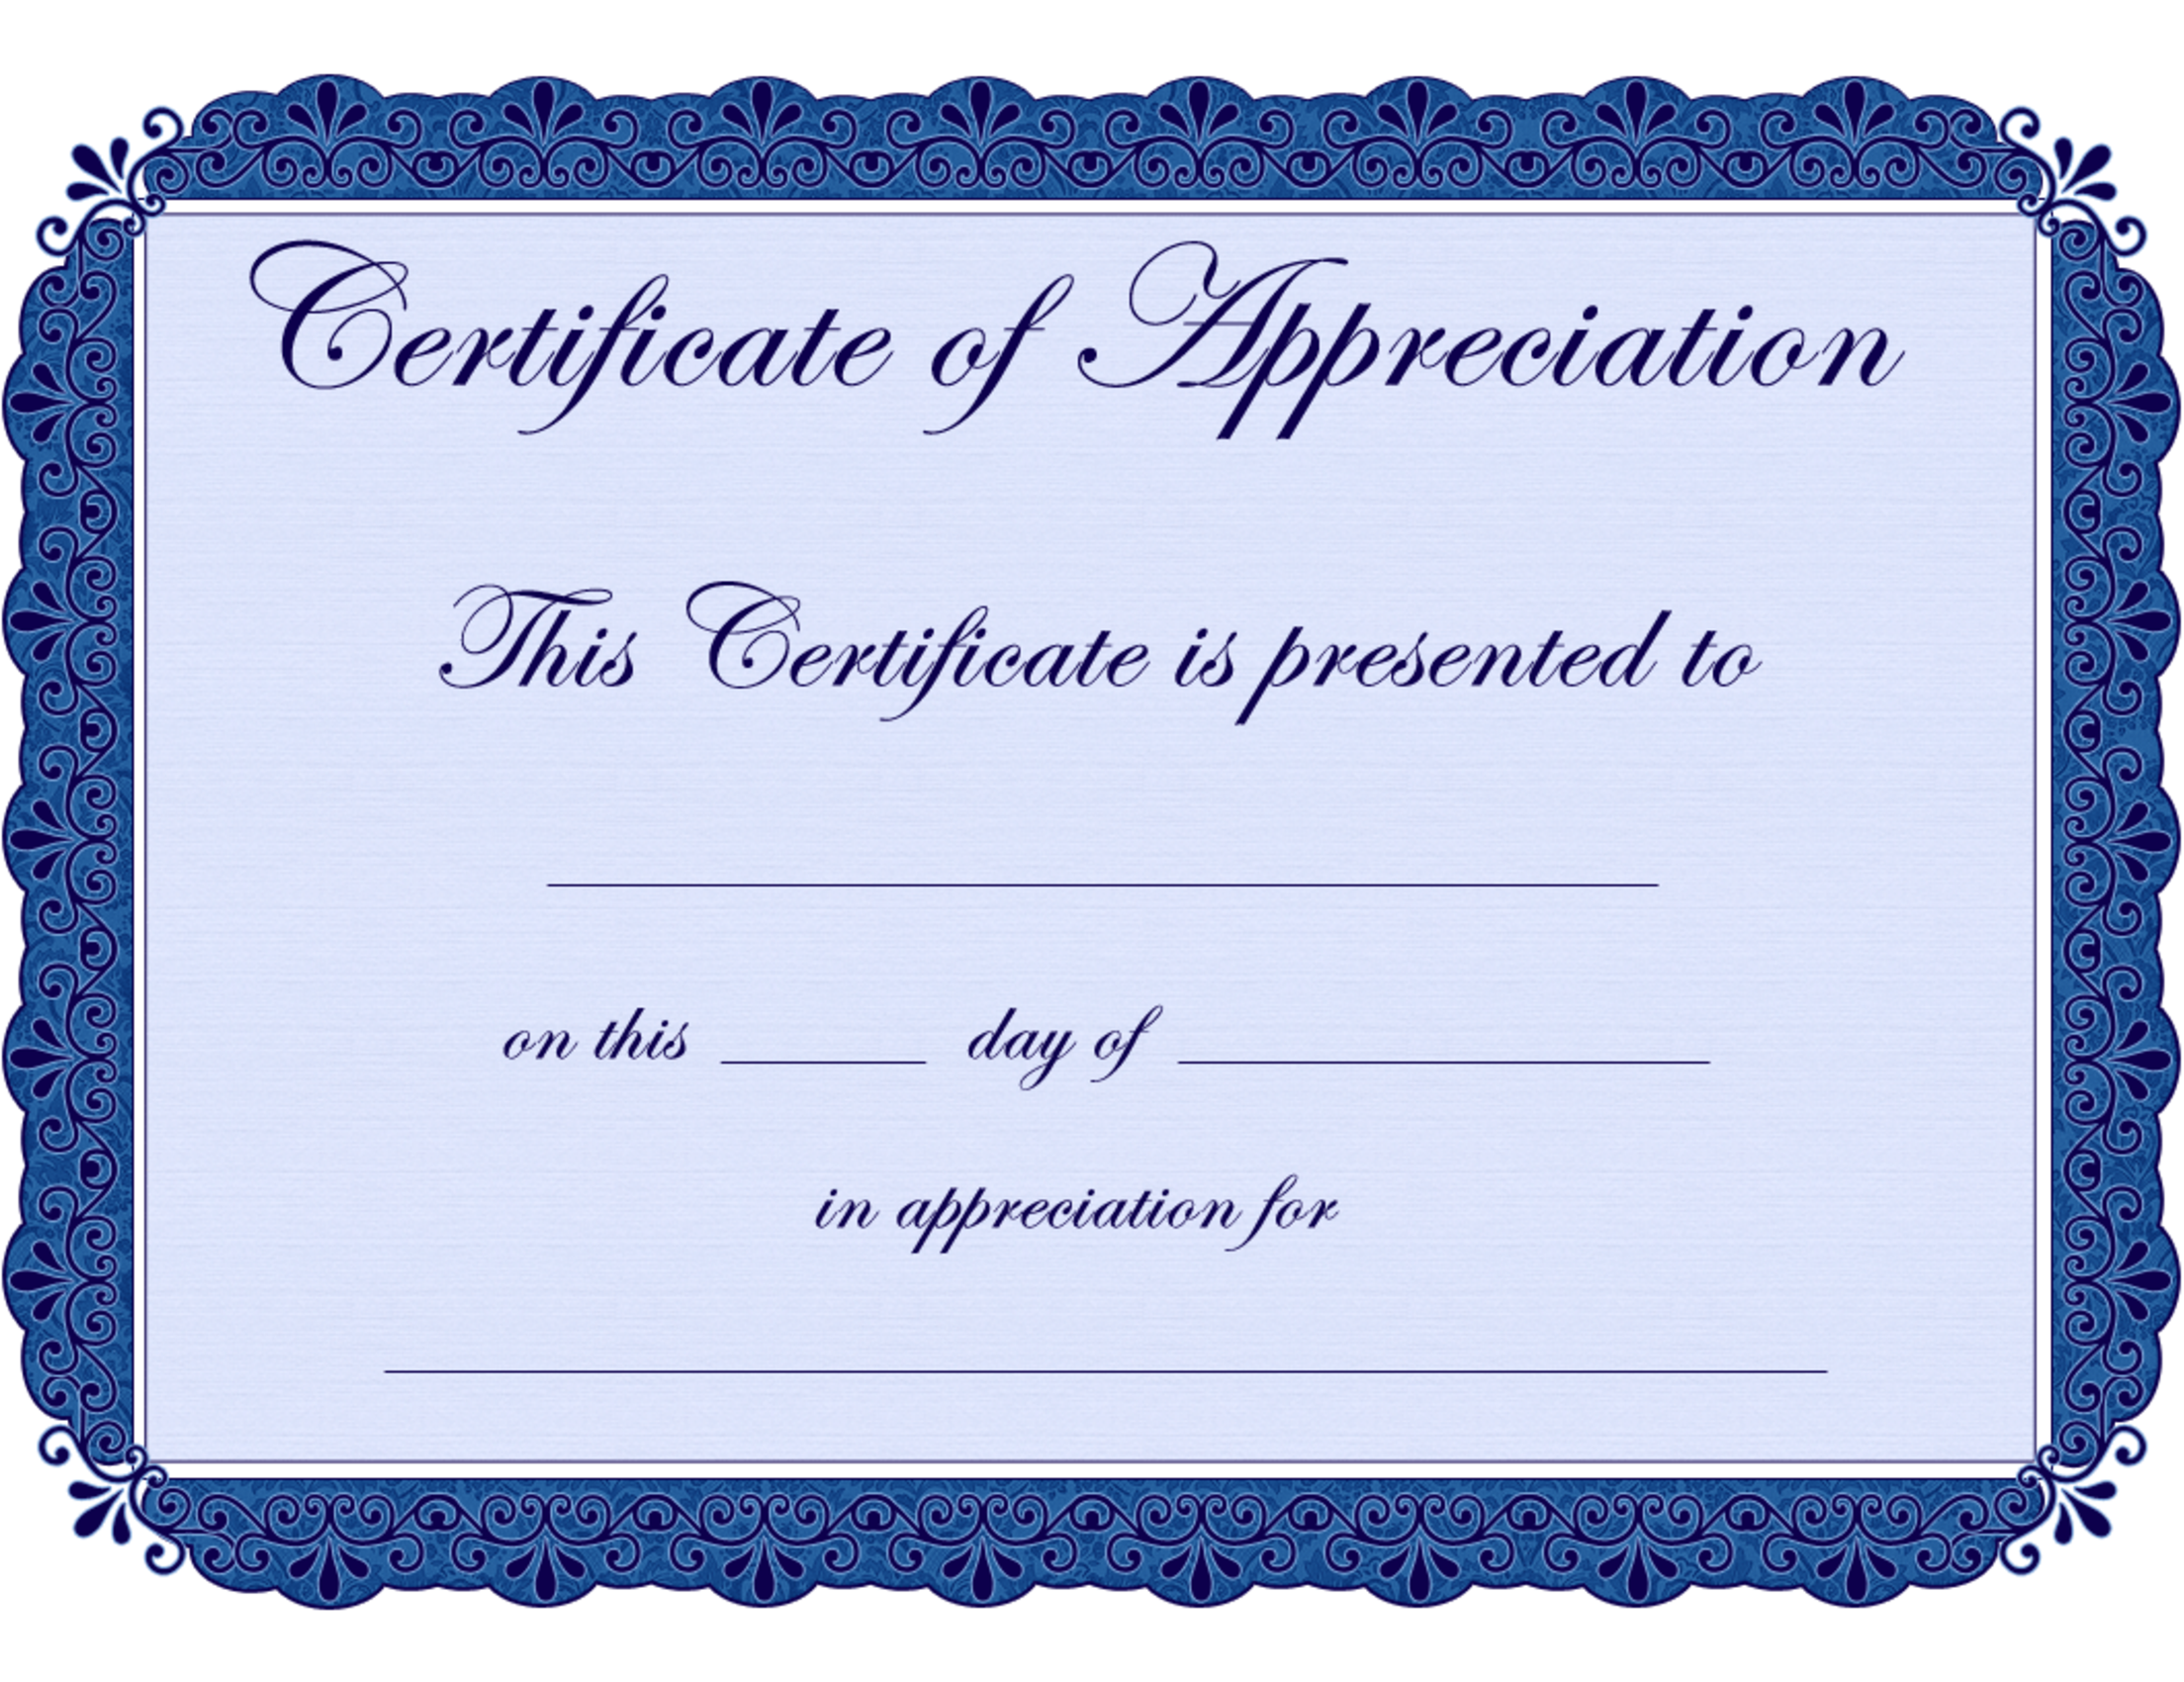 free printable certificates Certificate of Appreciation – Free Customizable Printable Certificates of Achievement